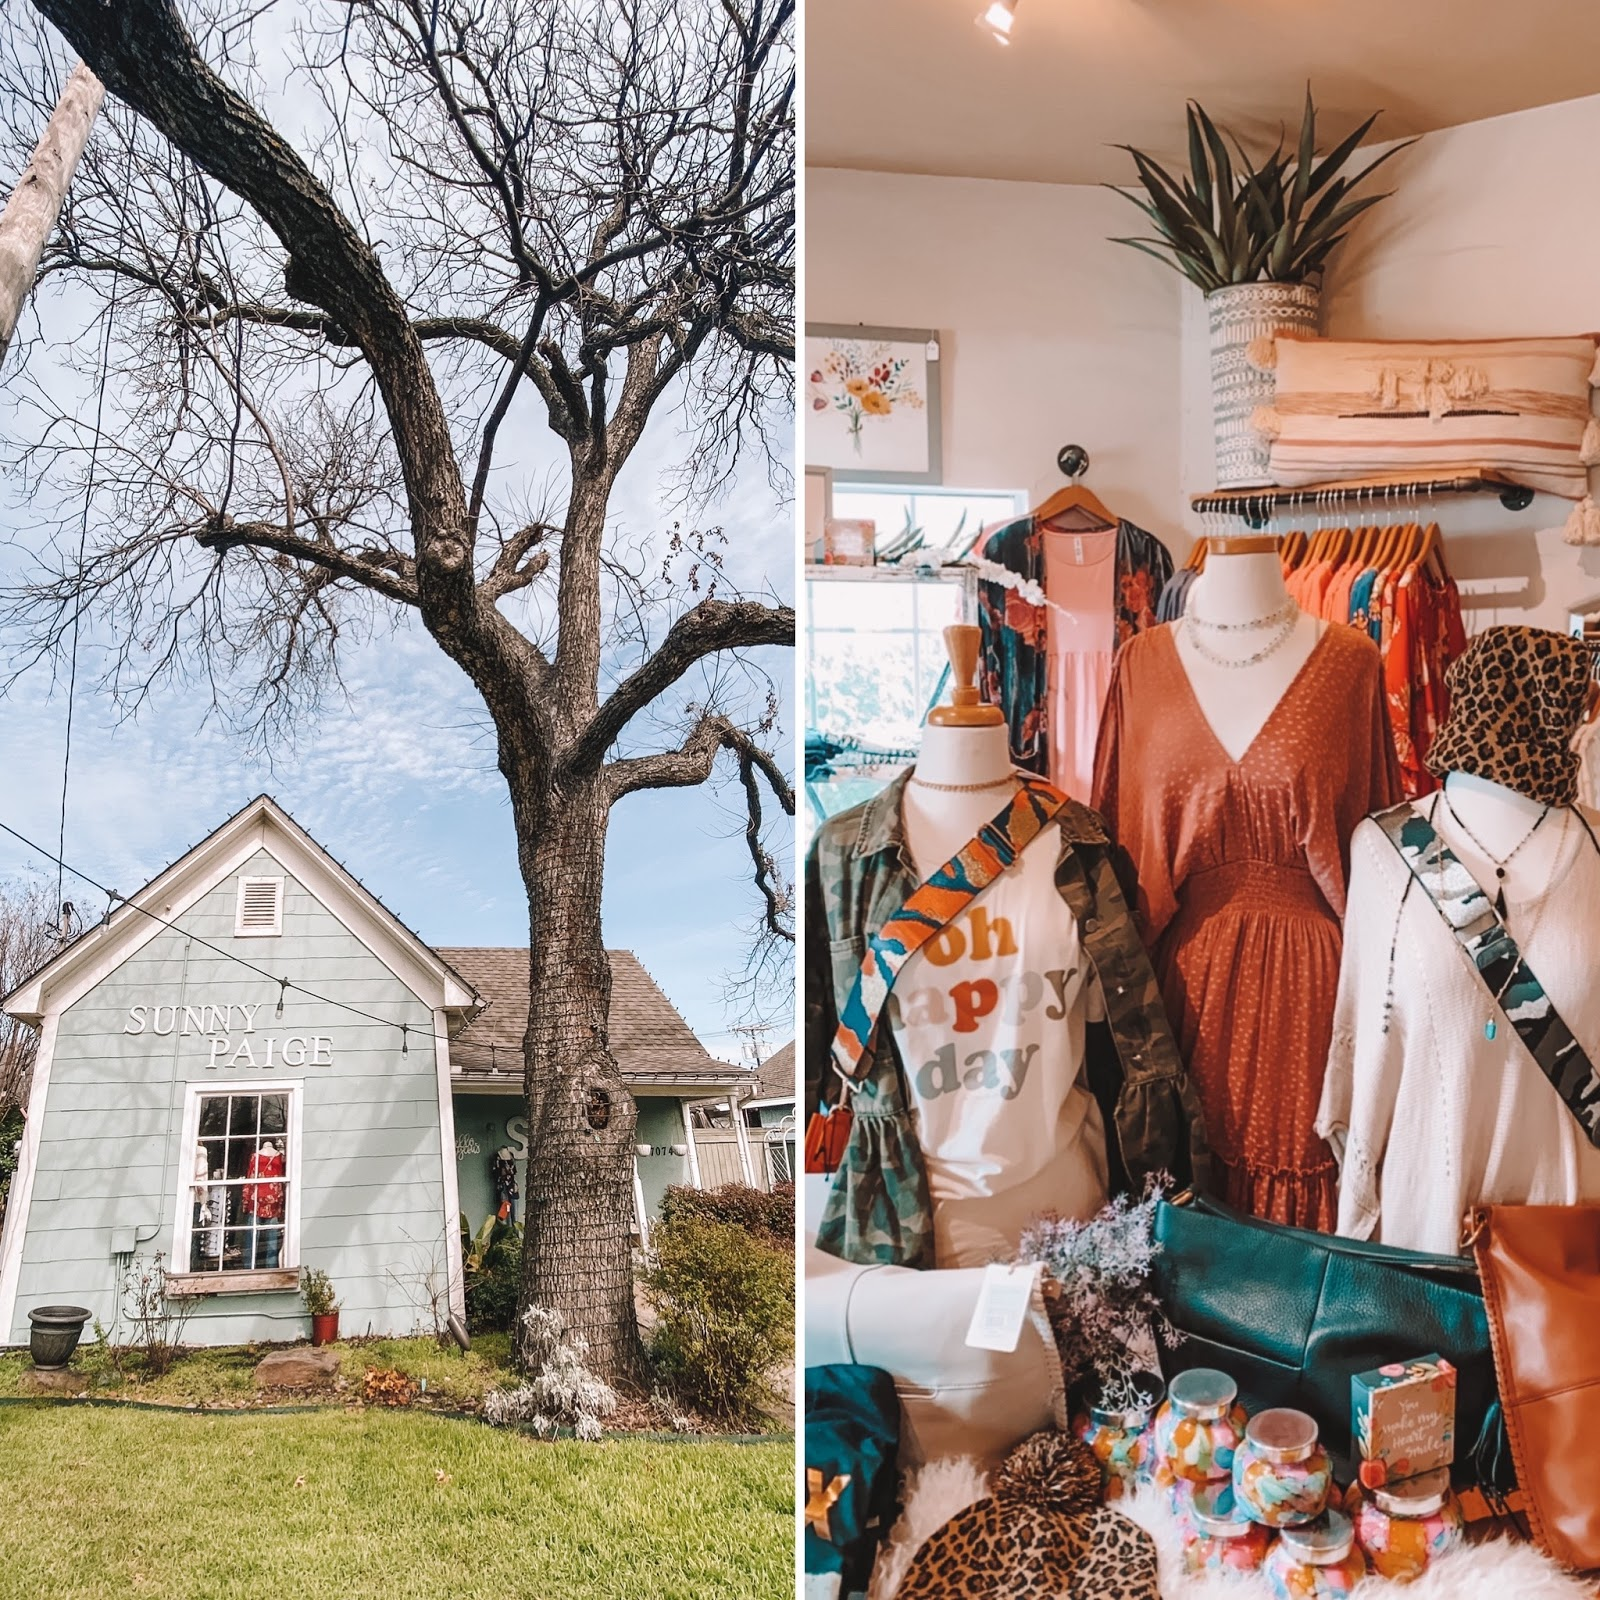 Sunny Paige boutique is located on Main Street in Frisco, Texas